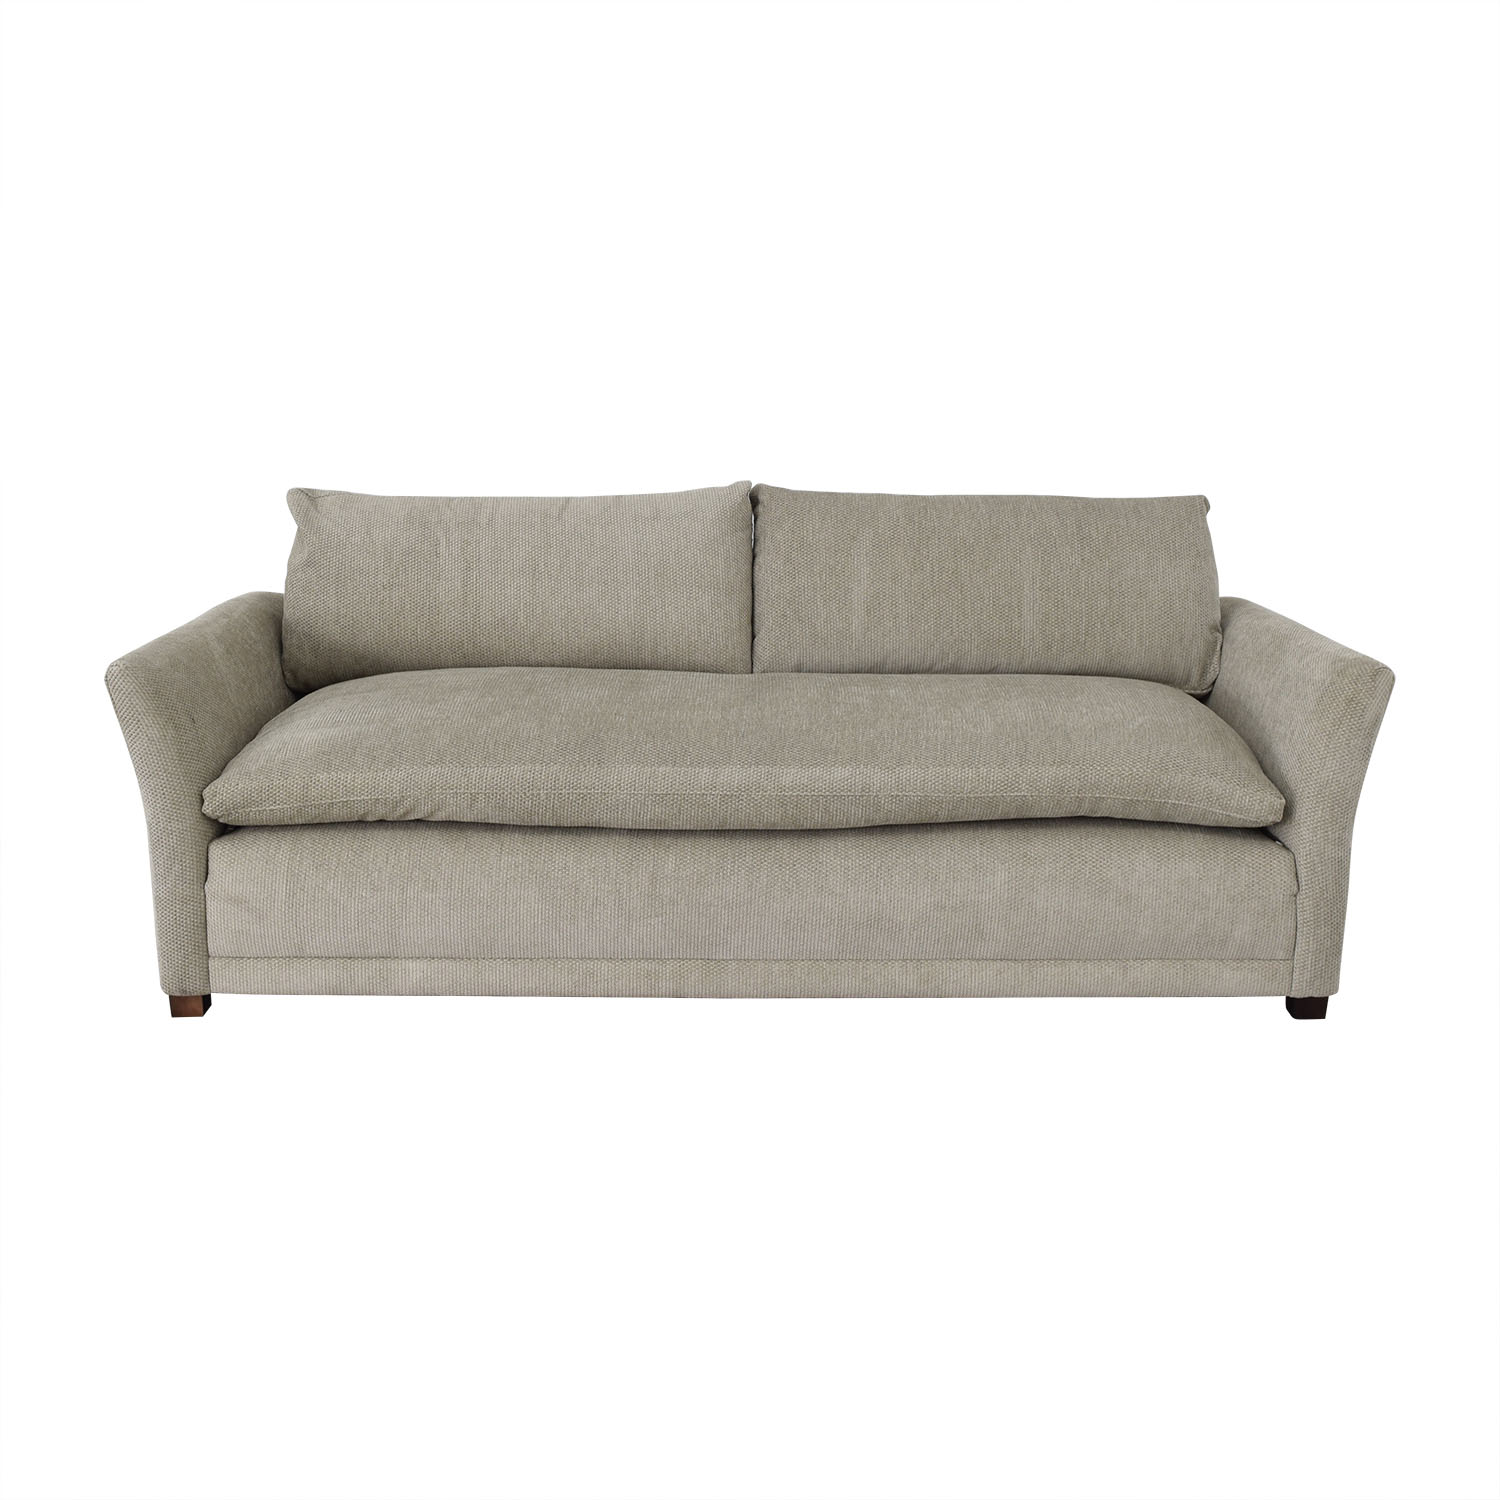 Grey Single Cushion Sofa for sale